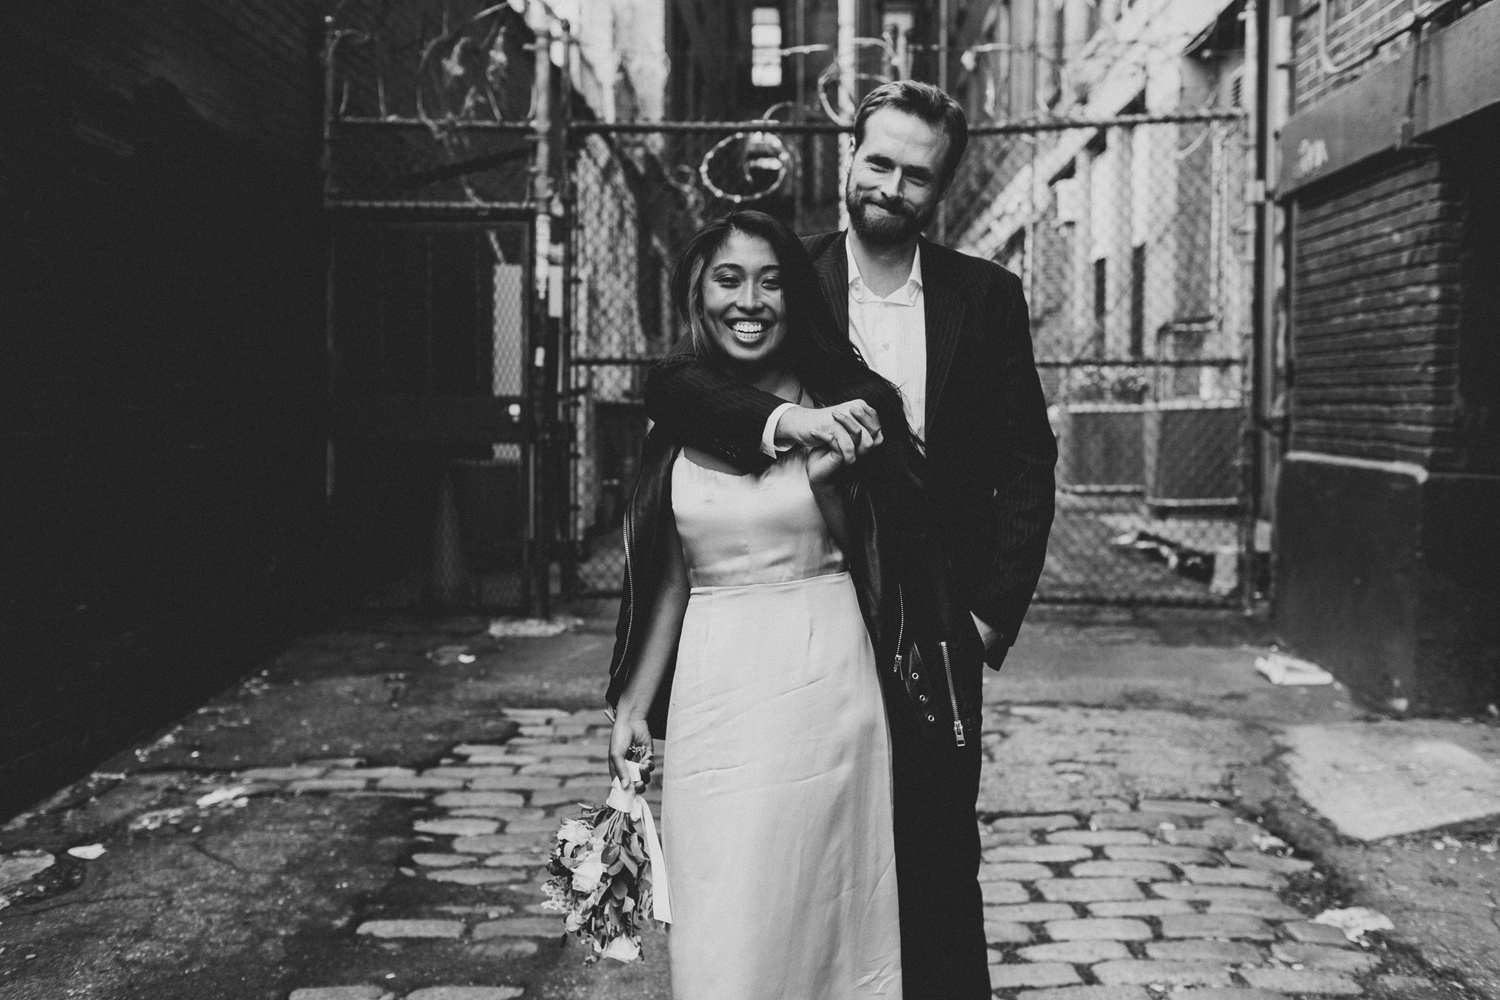 elopement-nyc-cityhall-wedding-32.jpg